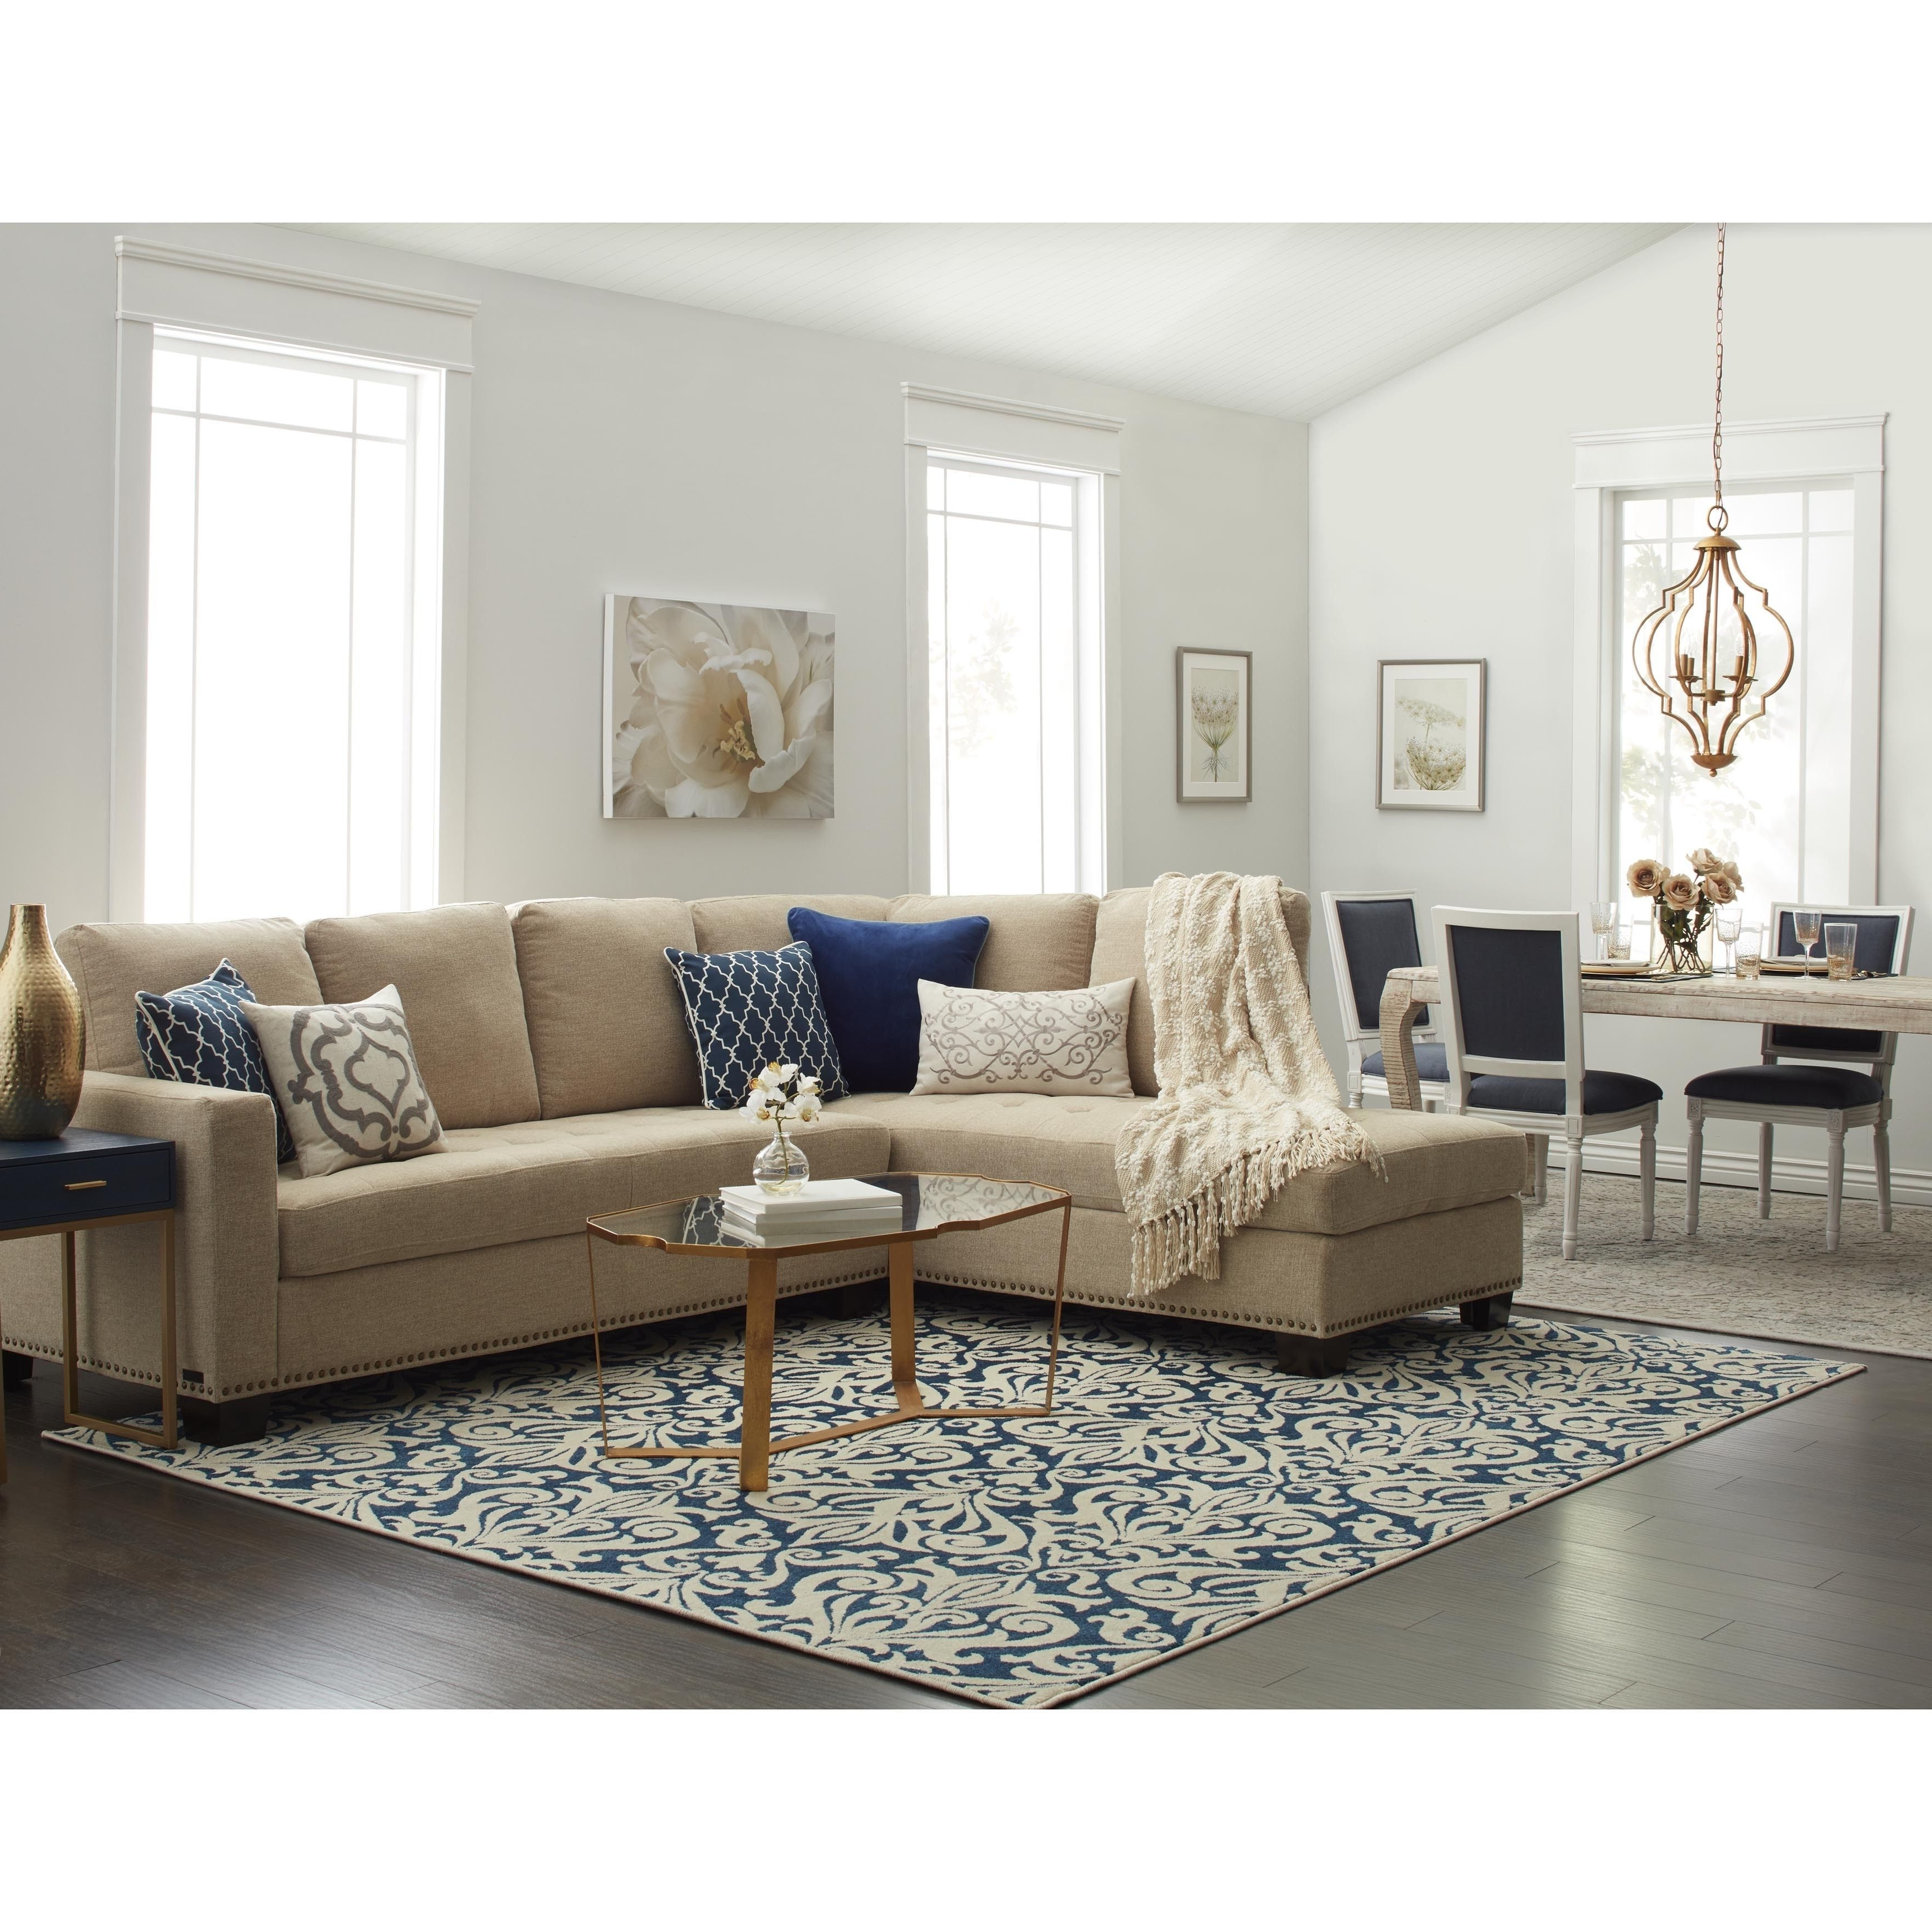 Newest Beige Sectional Sofas Inside Sectionals Home Goods : Free Shipping On Orders Over $45 At (View 17 of 20)